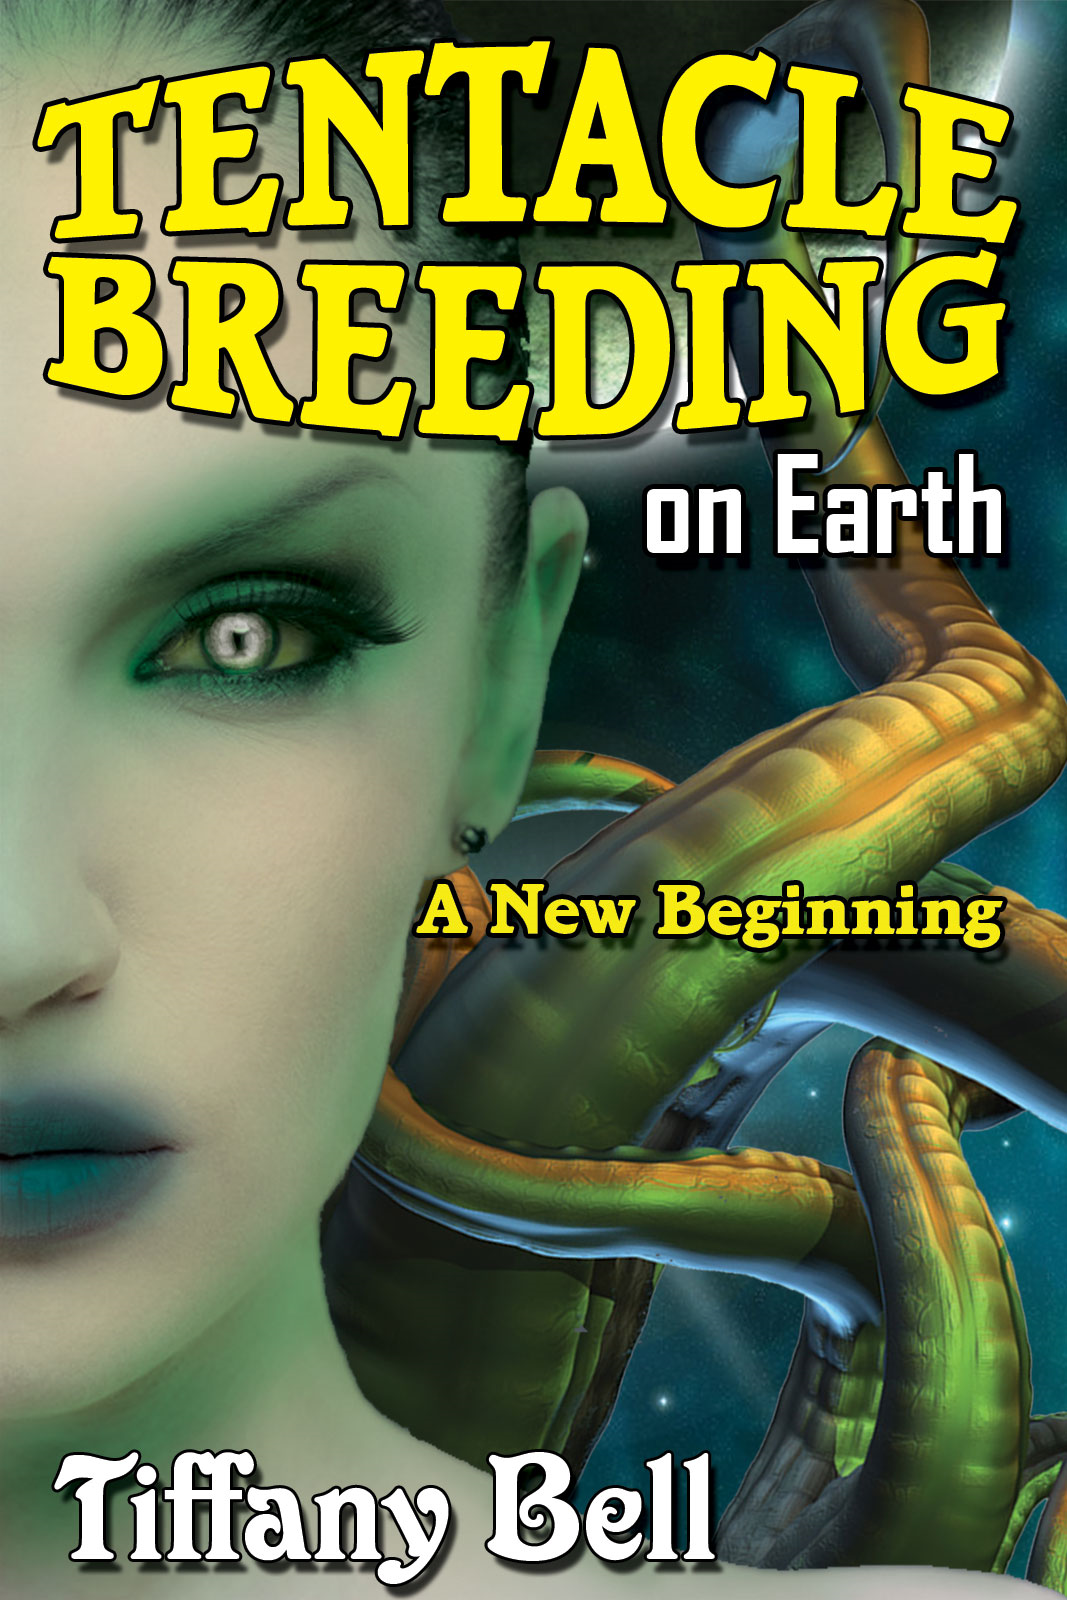 Tentacle Breeding on Earth: A New Beginning (Sci-Fi Futanari Erotica)